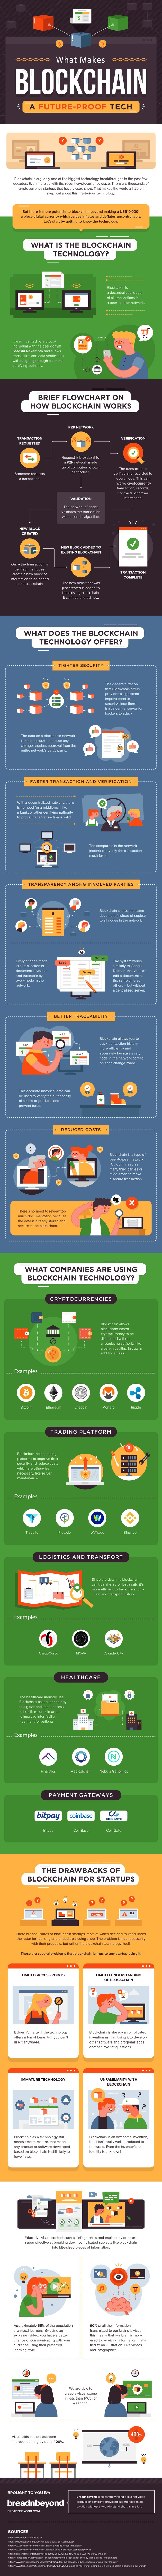 [Infographic] The Visual Guide to Blockchain Beyond Cryptocurrency